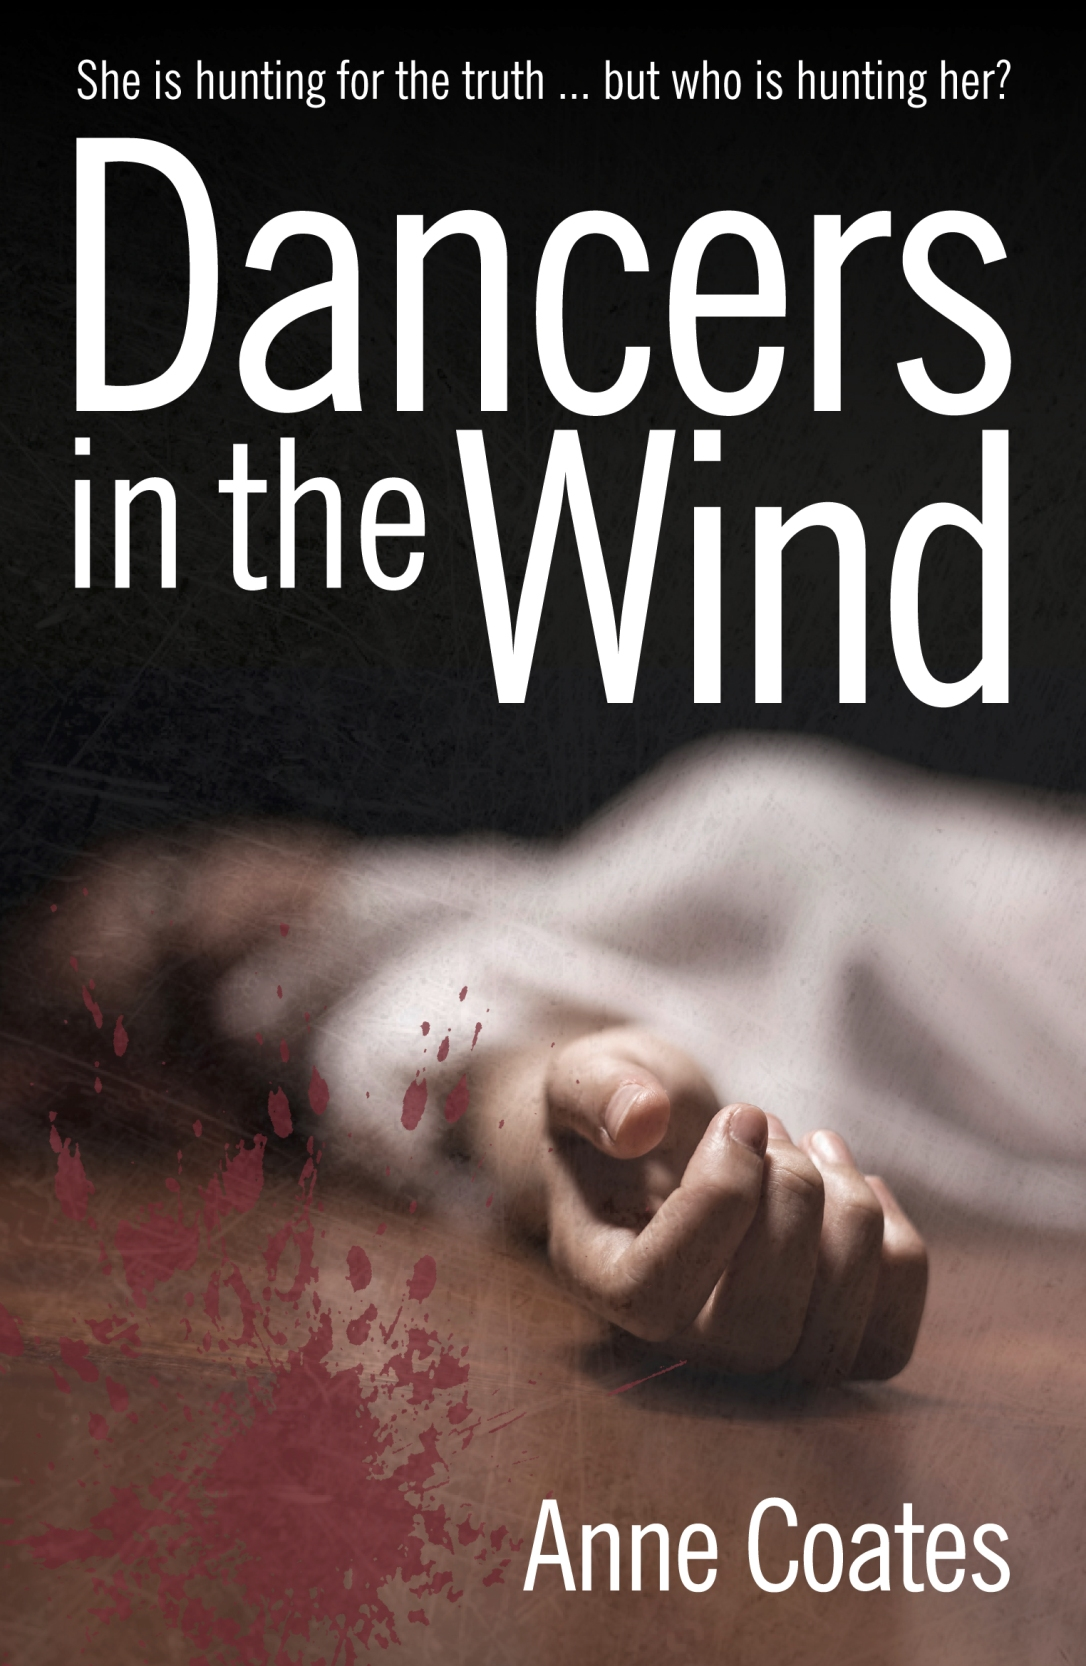 dancers in the wind.jpg